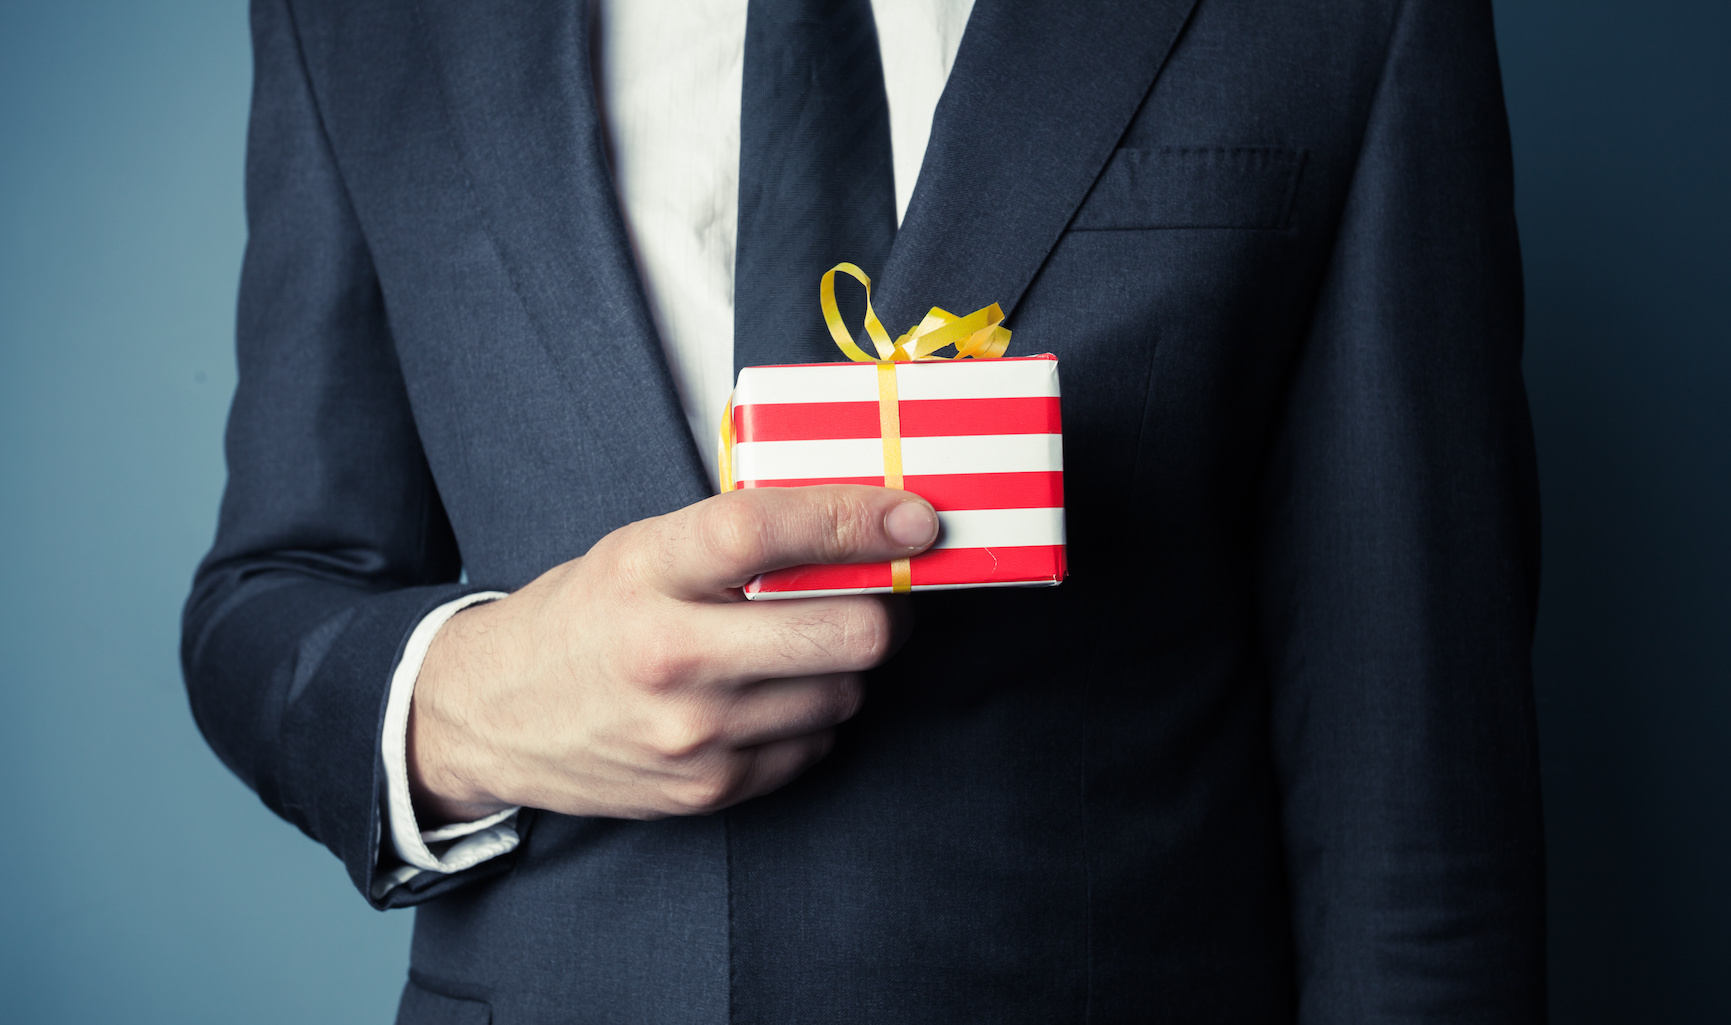 Businessman is holding a small gift